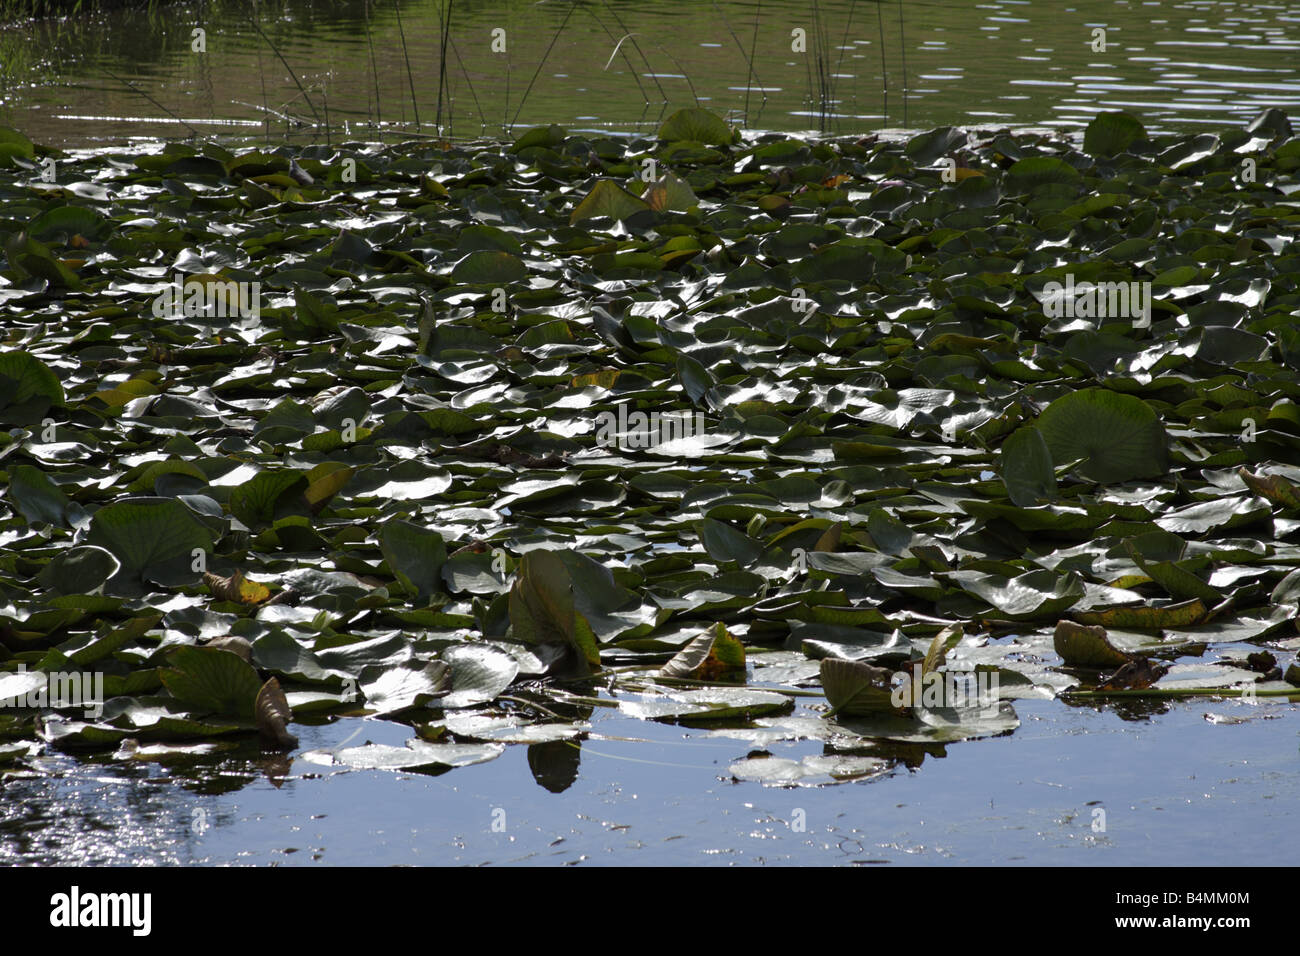 Waterlilies (Nymphaea), Arizona, USA - Stock Image